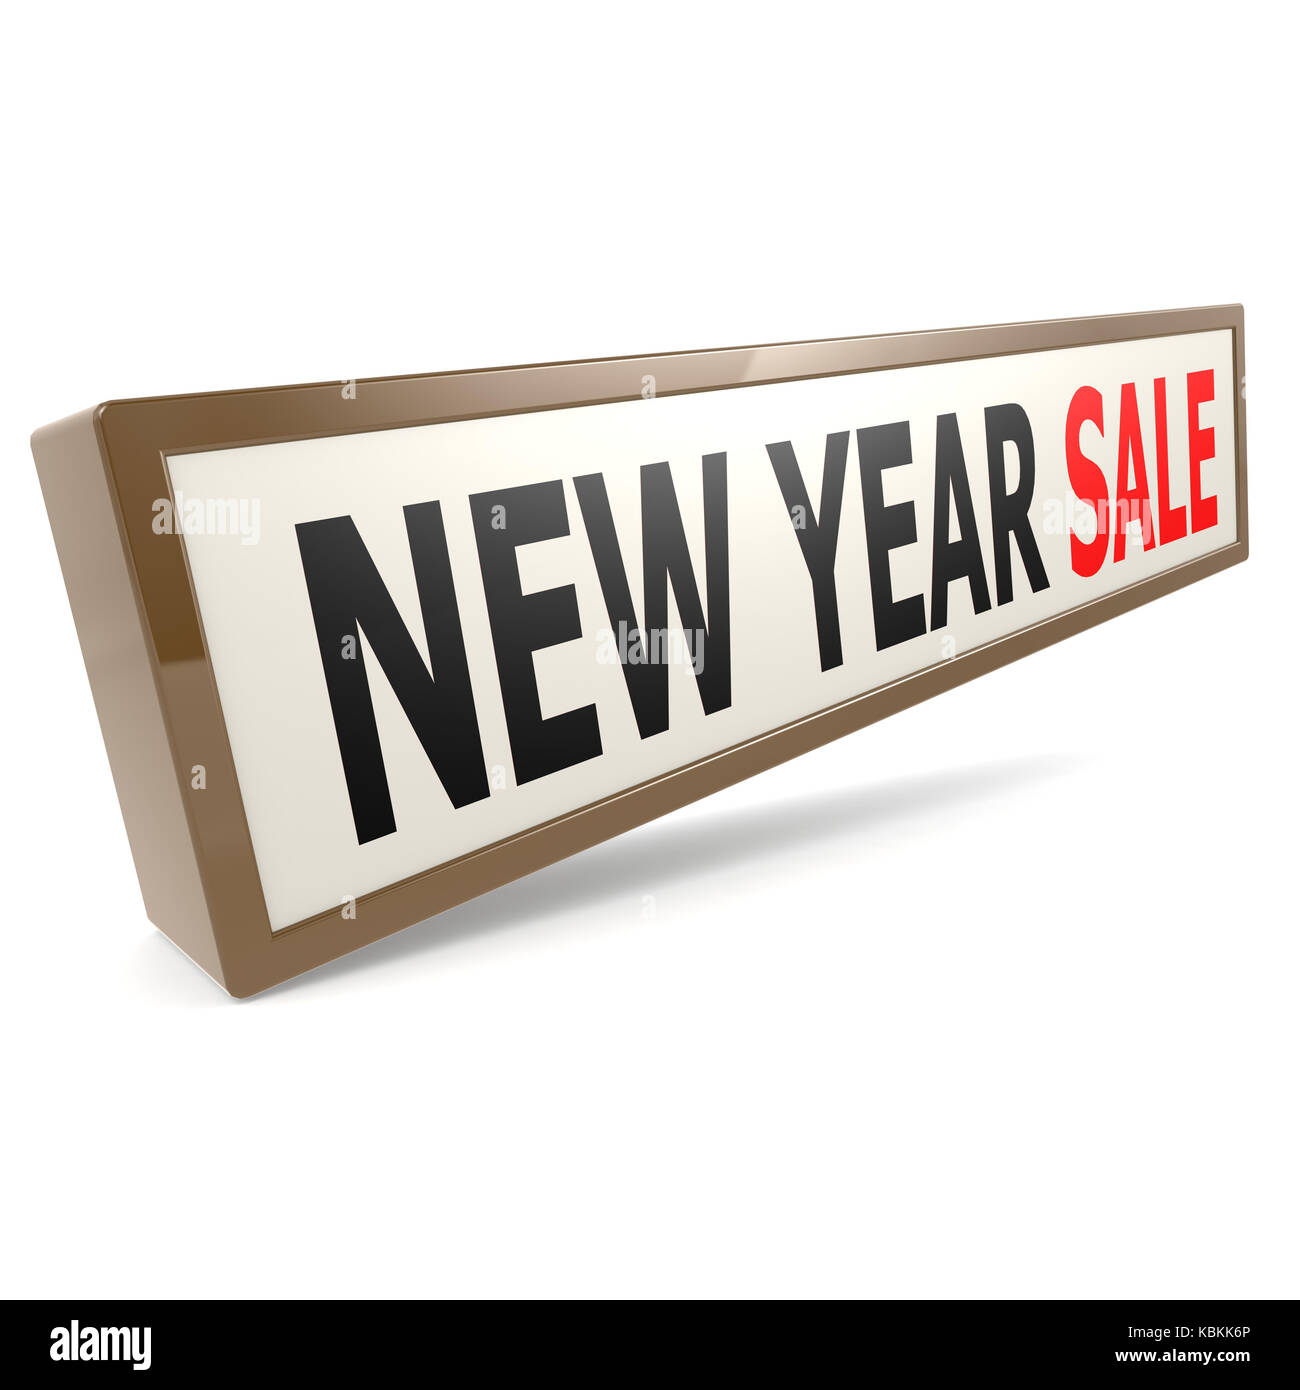 new year sale banner image with hi res rendered artwork that could be used for any graphic design